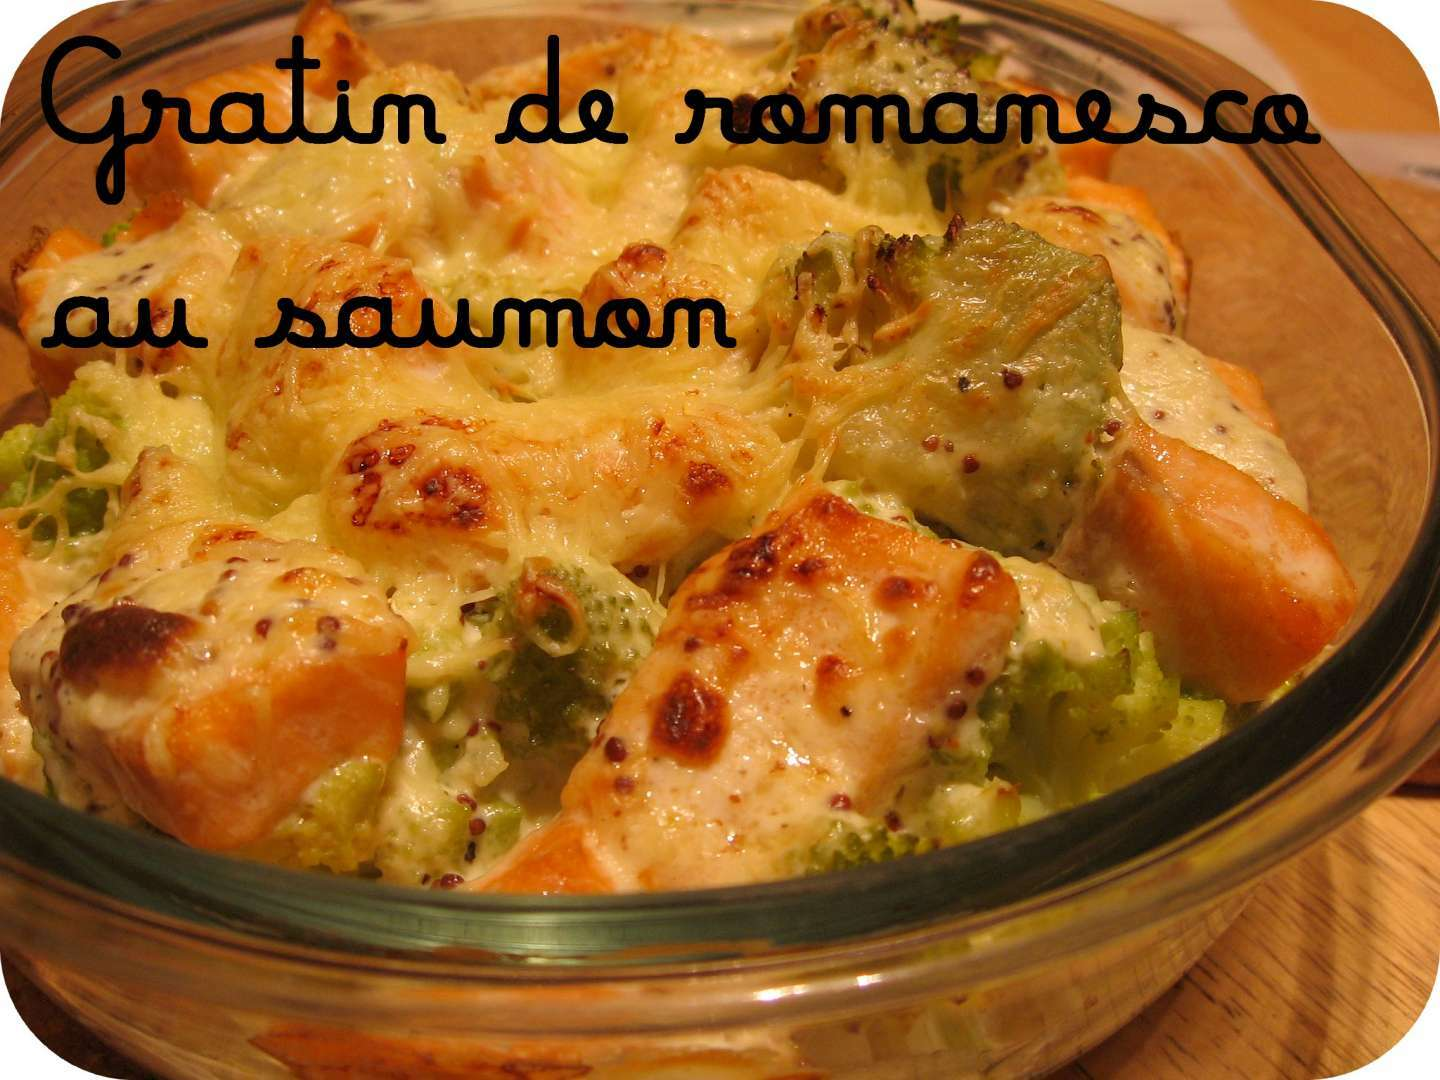 gratin de romanesco au saumon recette ptitchef. Black Bedroom Furniture Sets. Home Design Ideas